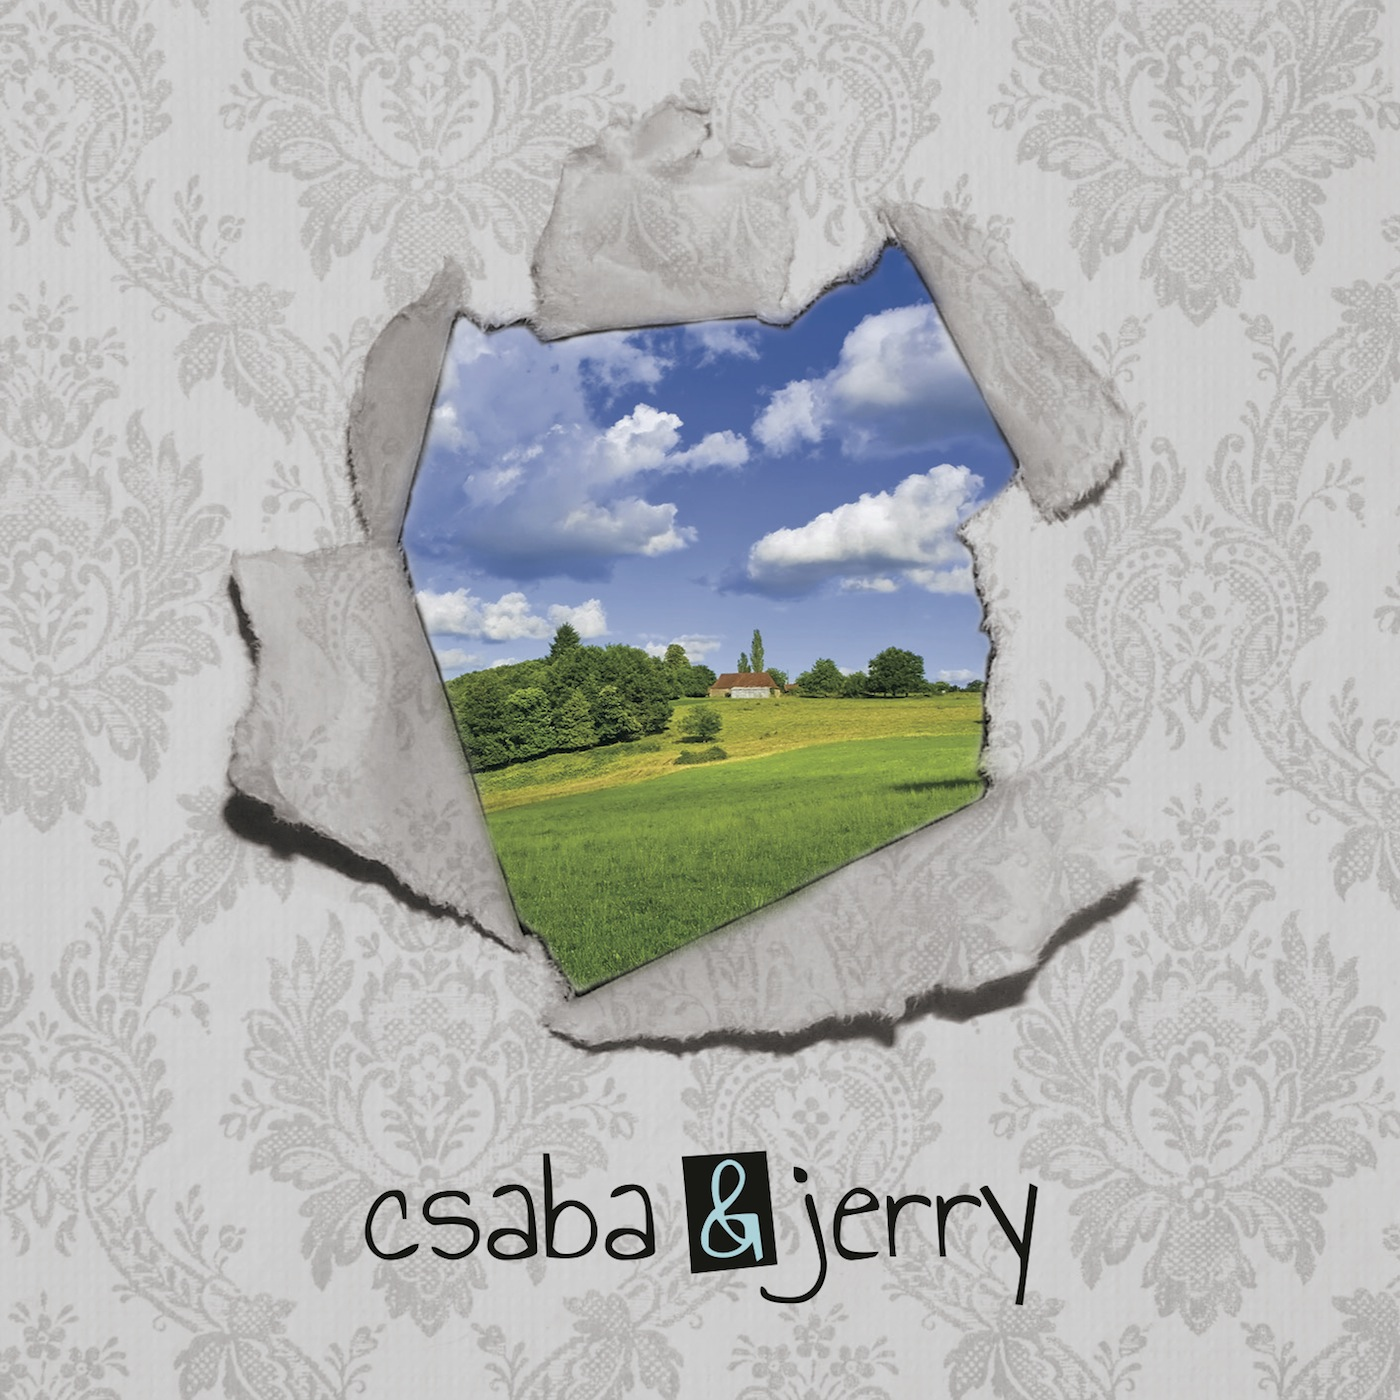 DOWNLOAD: Visit iTunes Music Store or or your favourite download store. Csaba & Jerry - Csaba & Jerry monophon MPHEP005, 2012.